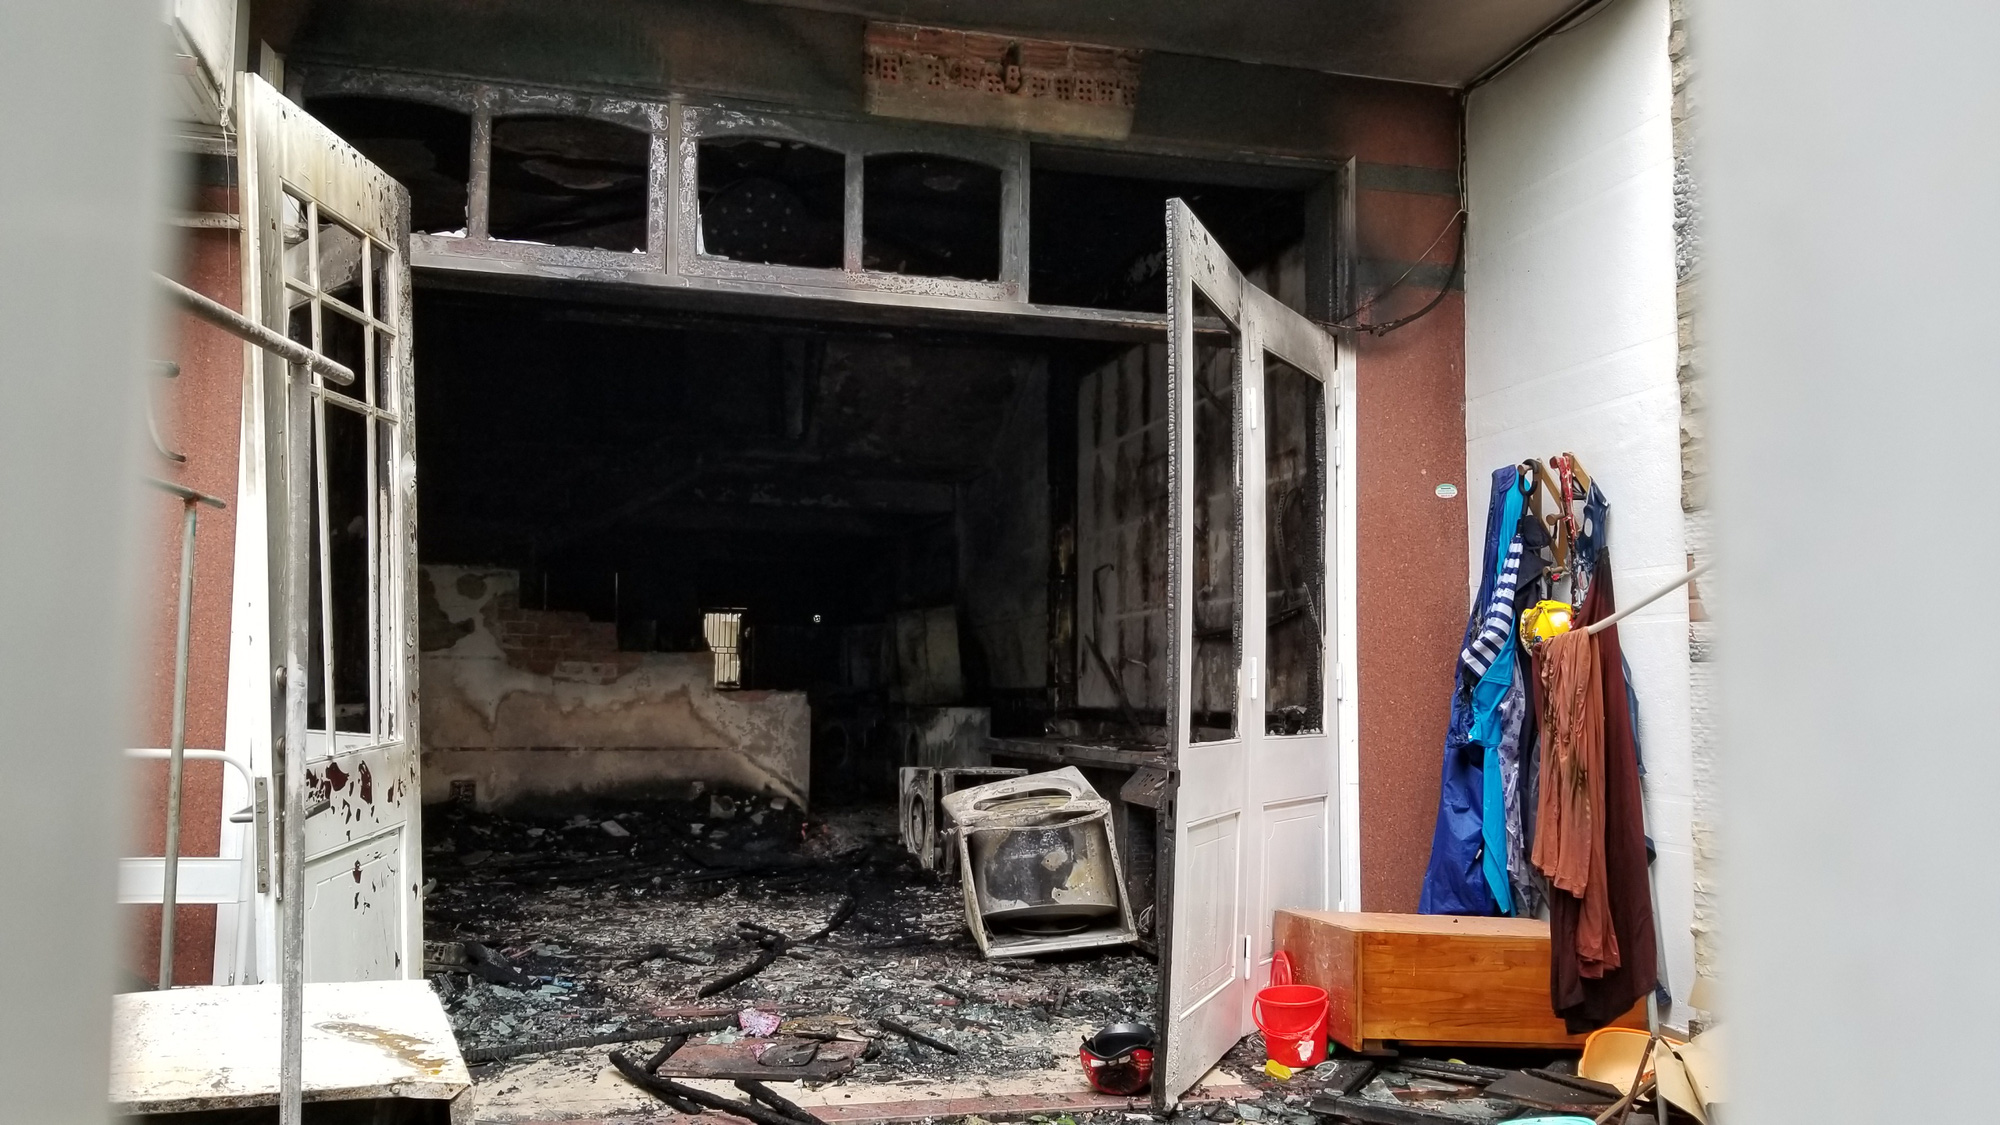 S.Korean injured after jumping from 2nd floor to escape fire at Da Nang laundromat